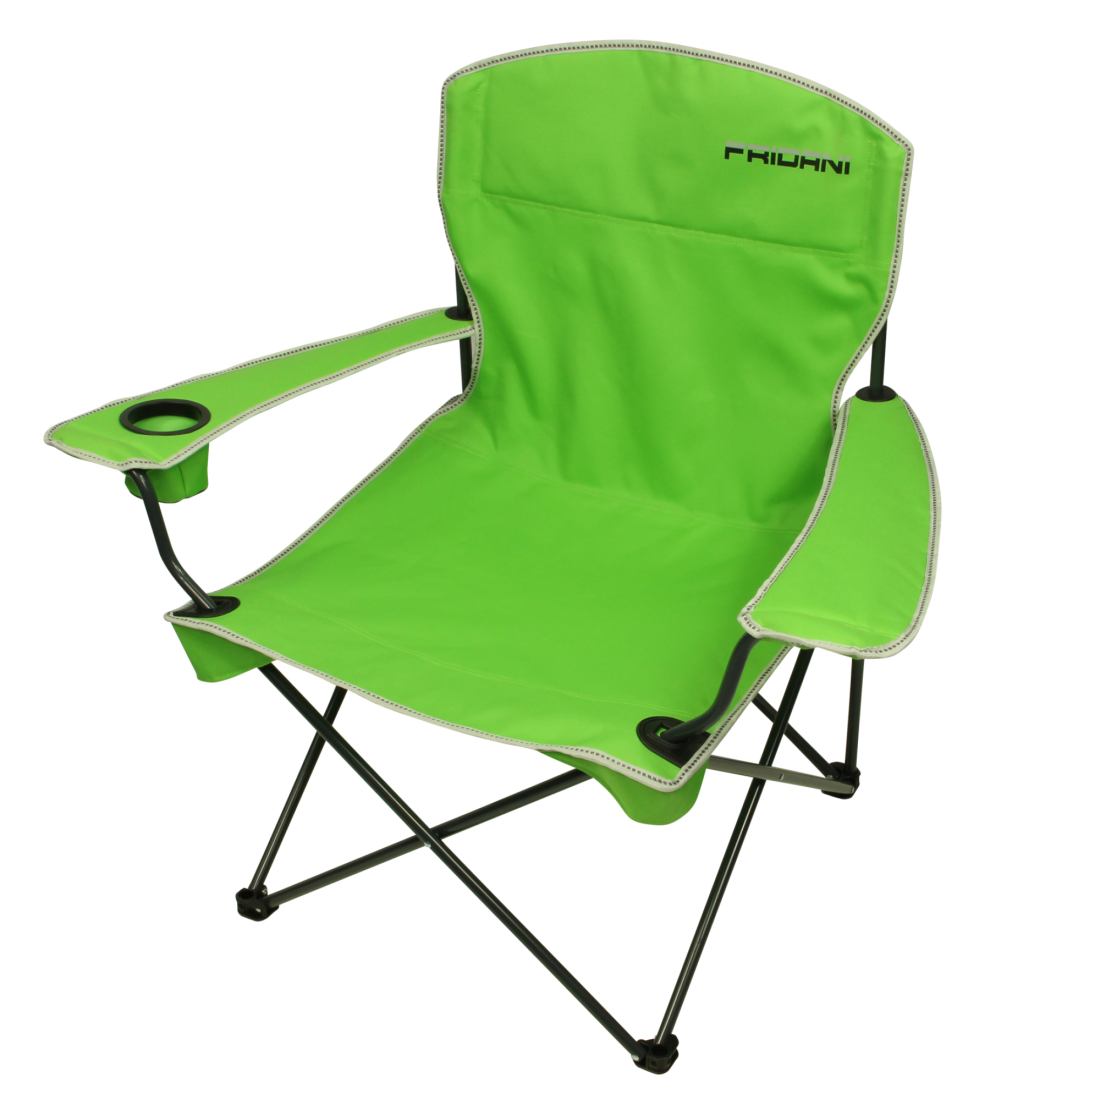 Fridani Camping Chair Fcg 90 Folding Chair Green Garden Chair With Armrests Drink Holder